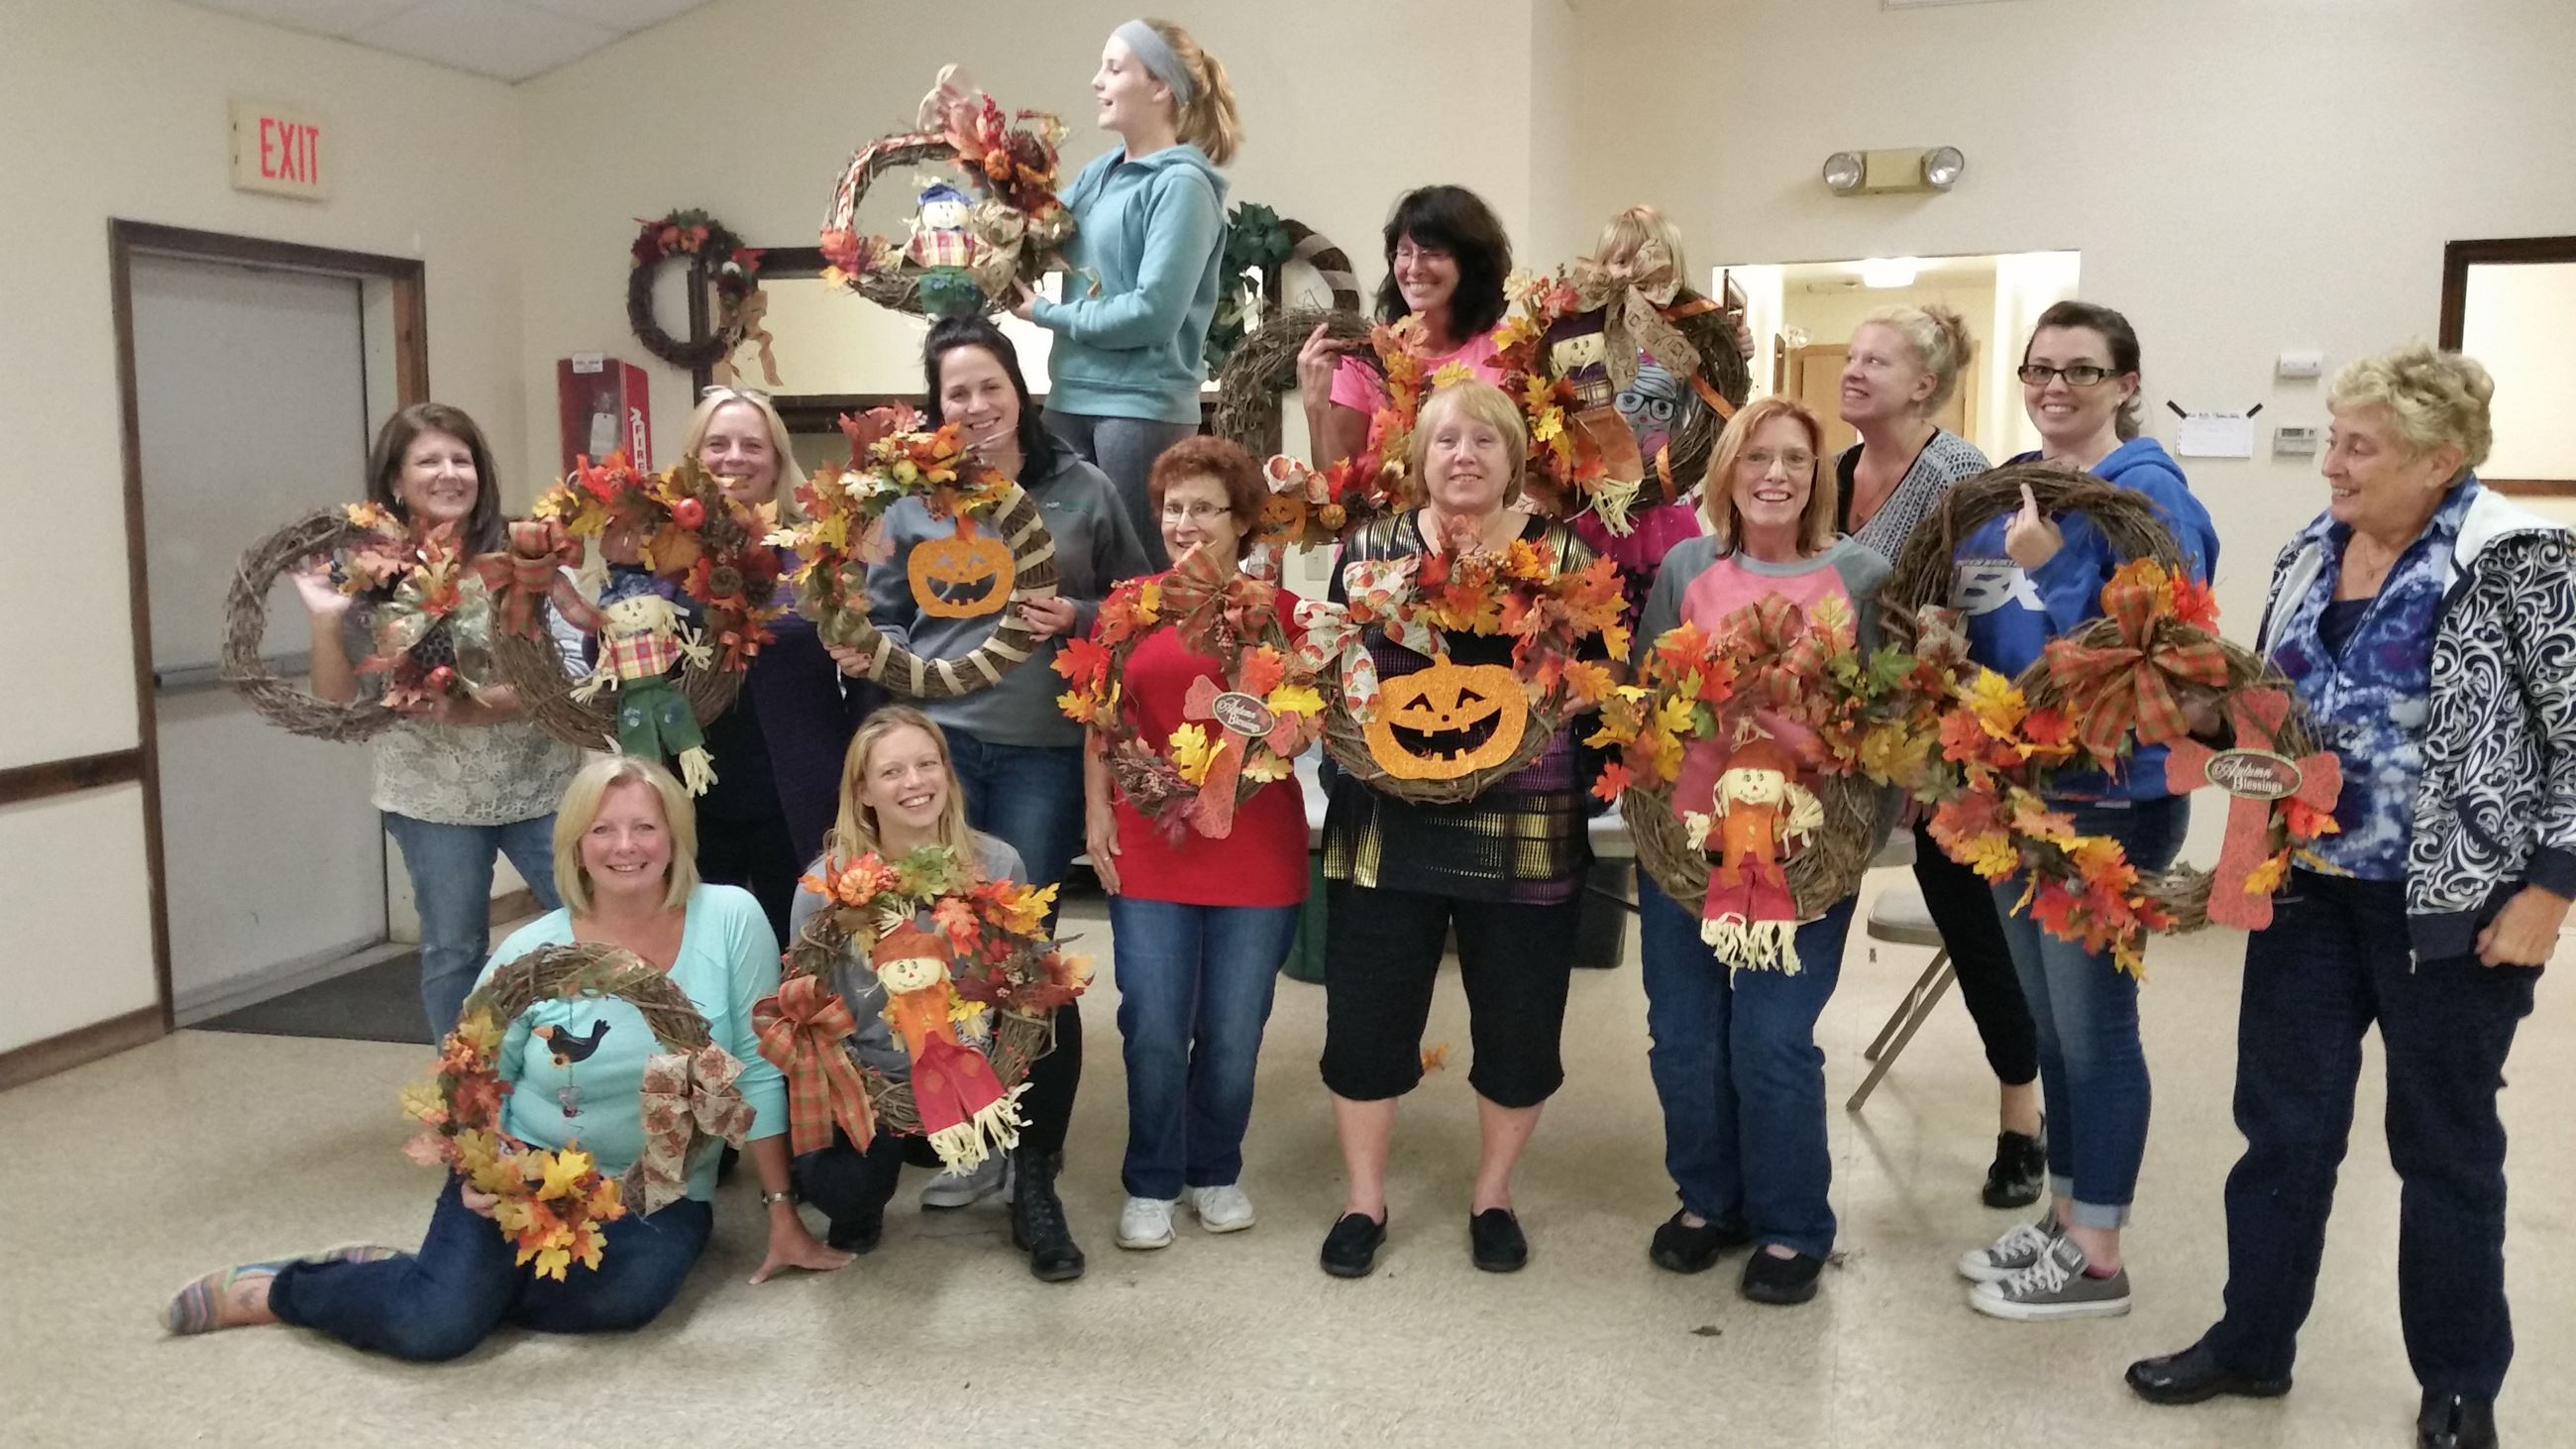 Wreath making oct 1 2015.jpg 3